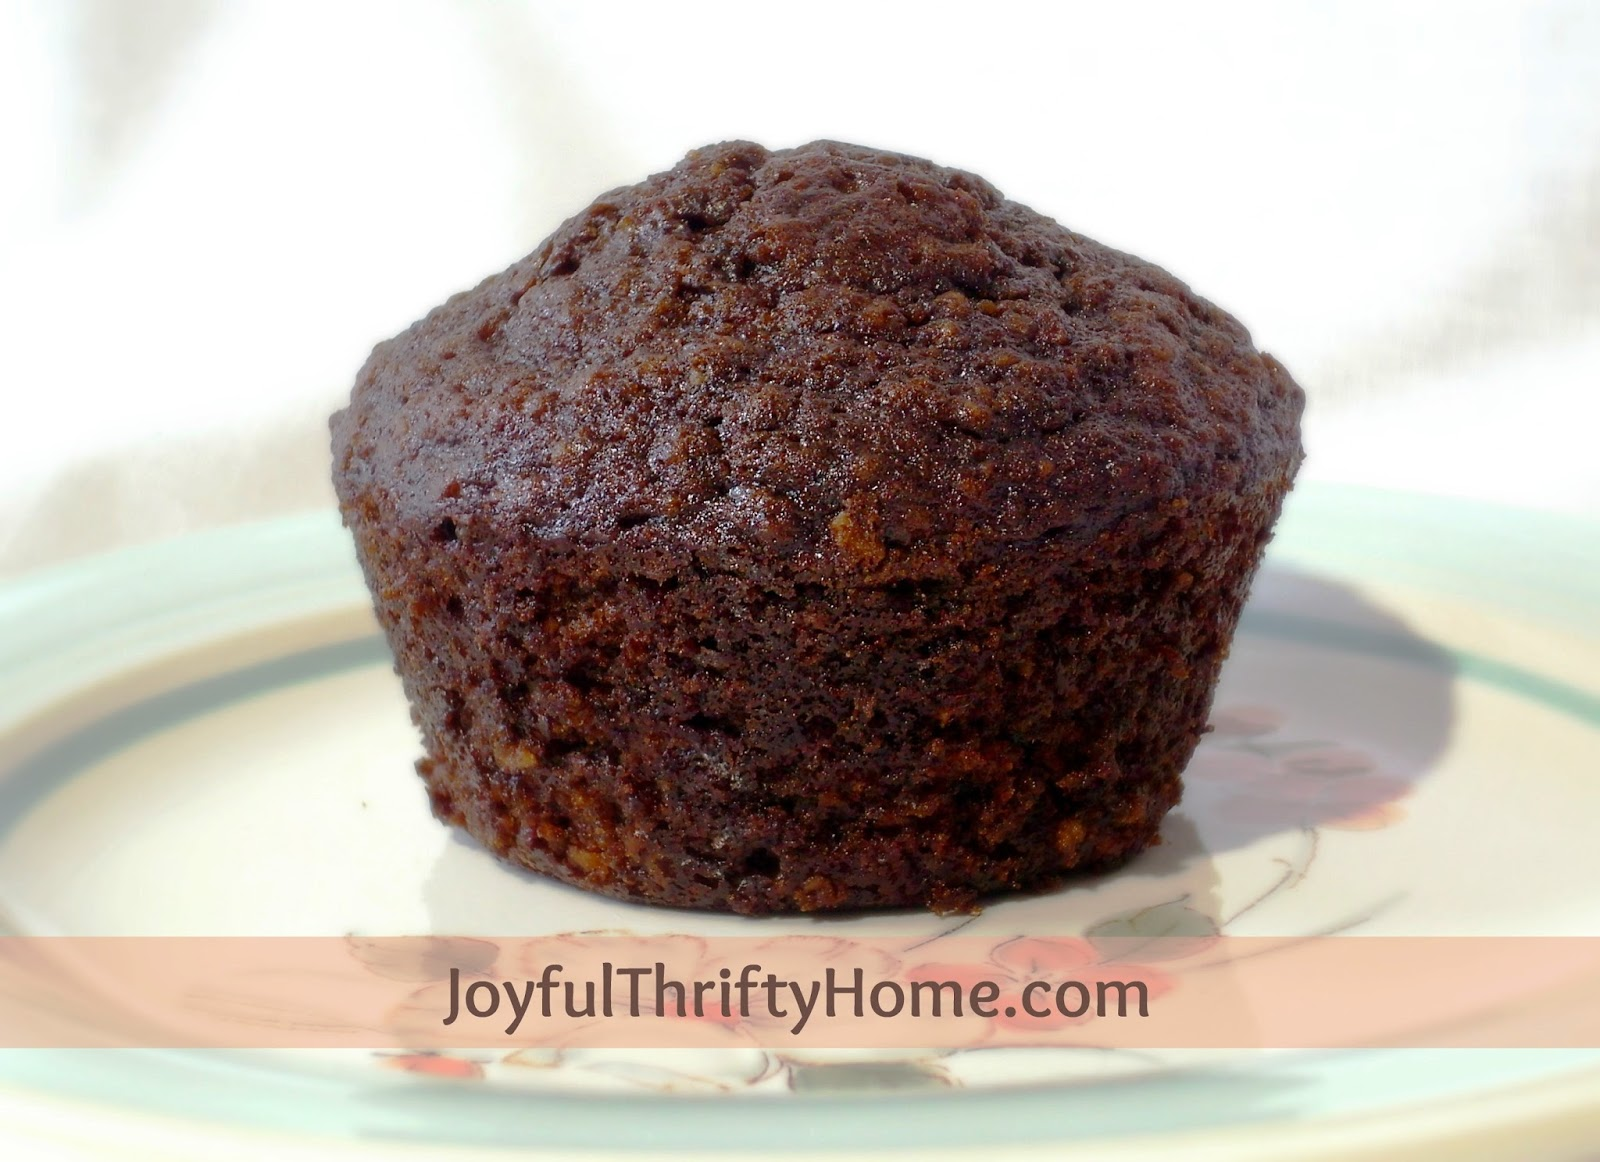 Mocha Breakfast Muffins @ Joyful Thrifty Home